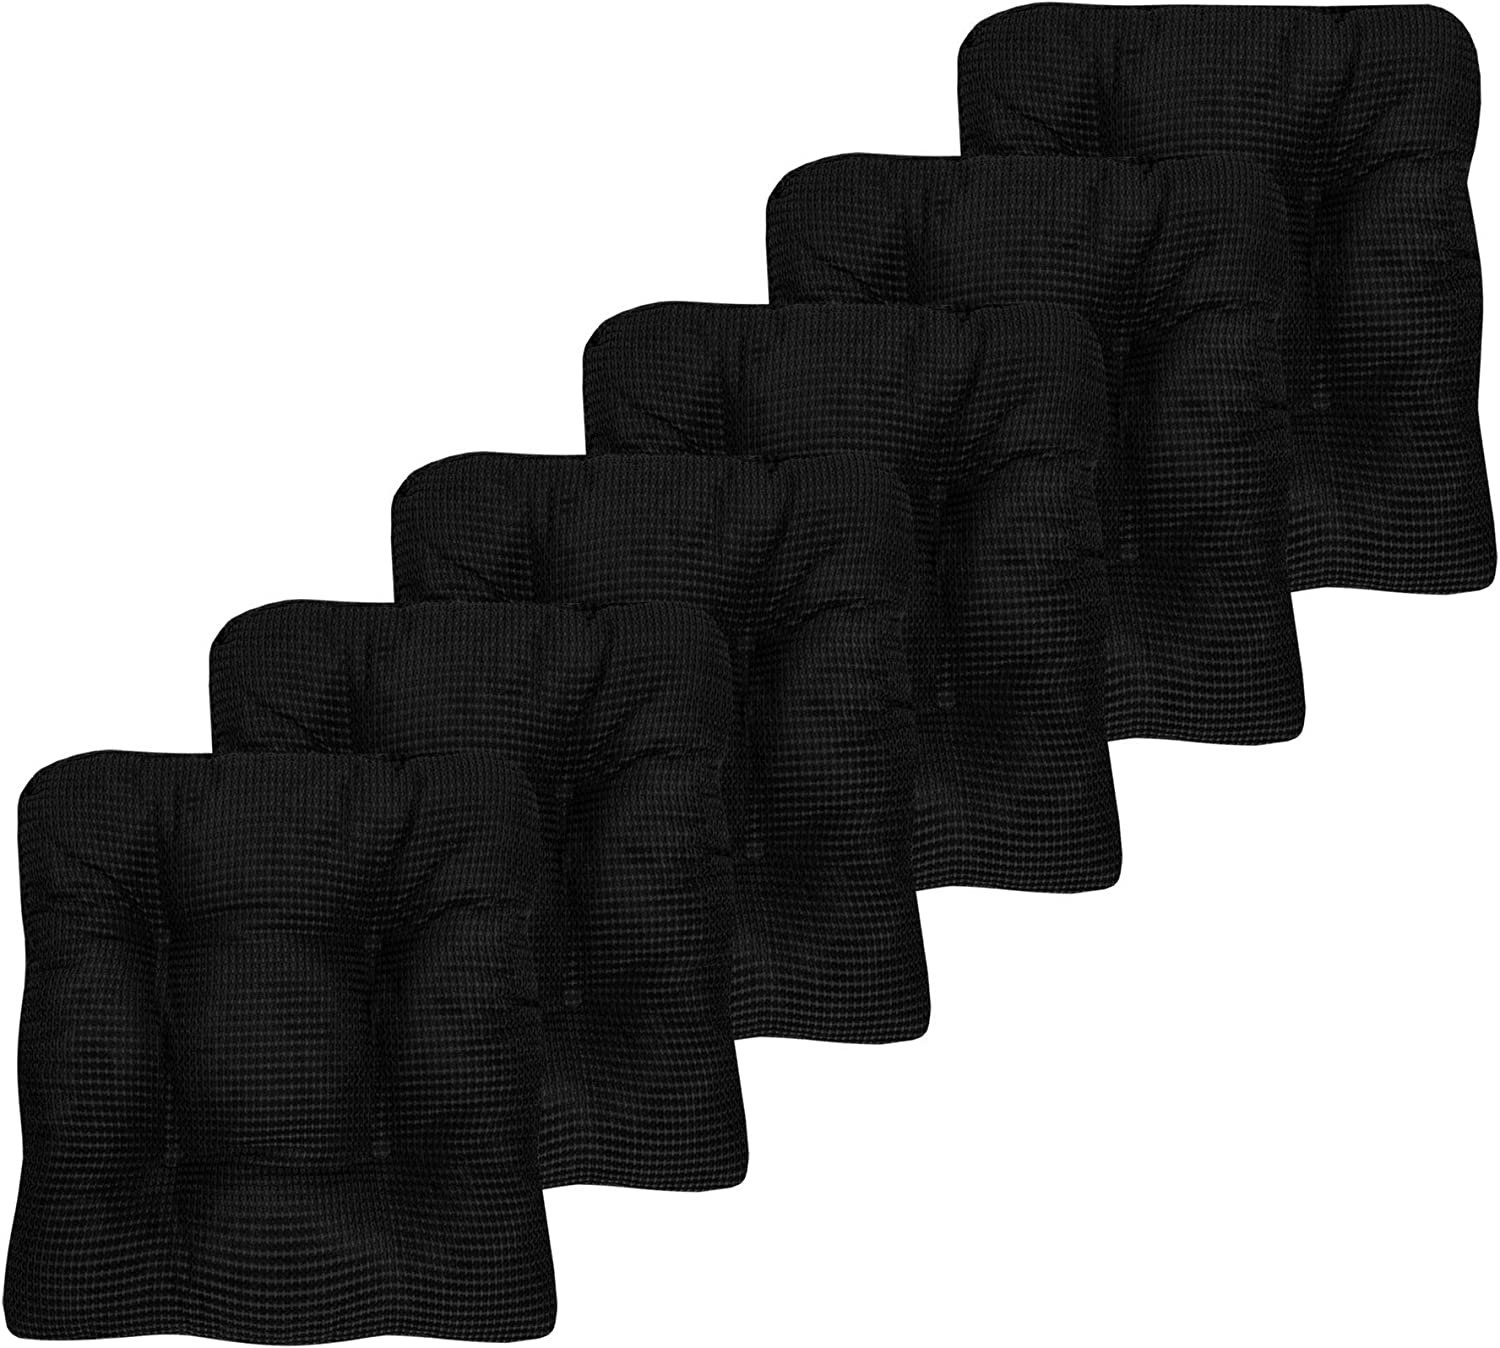 "Sweet Home Collection Chair Cushion Crushed Memory Foam Pads Premium Slip Non Skid Microdot Rubber Back Tufted 16"" x 16"" x 3.25"" Thick Seat Cover, 6 Pack, Black"